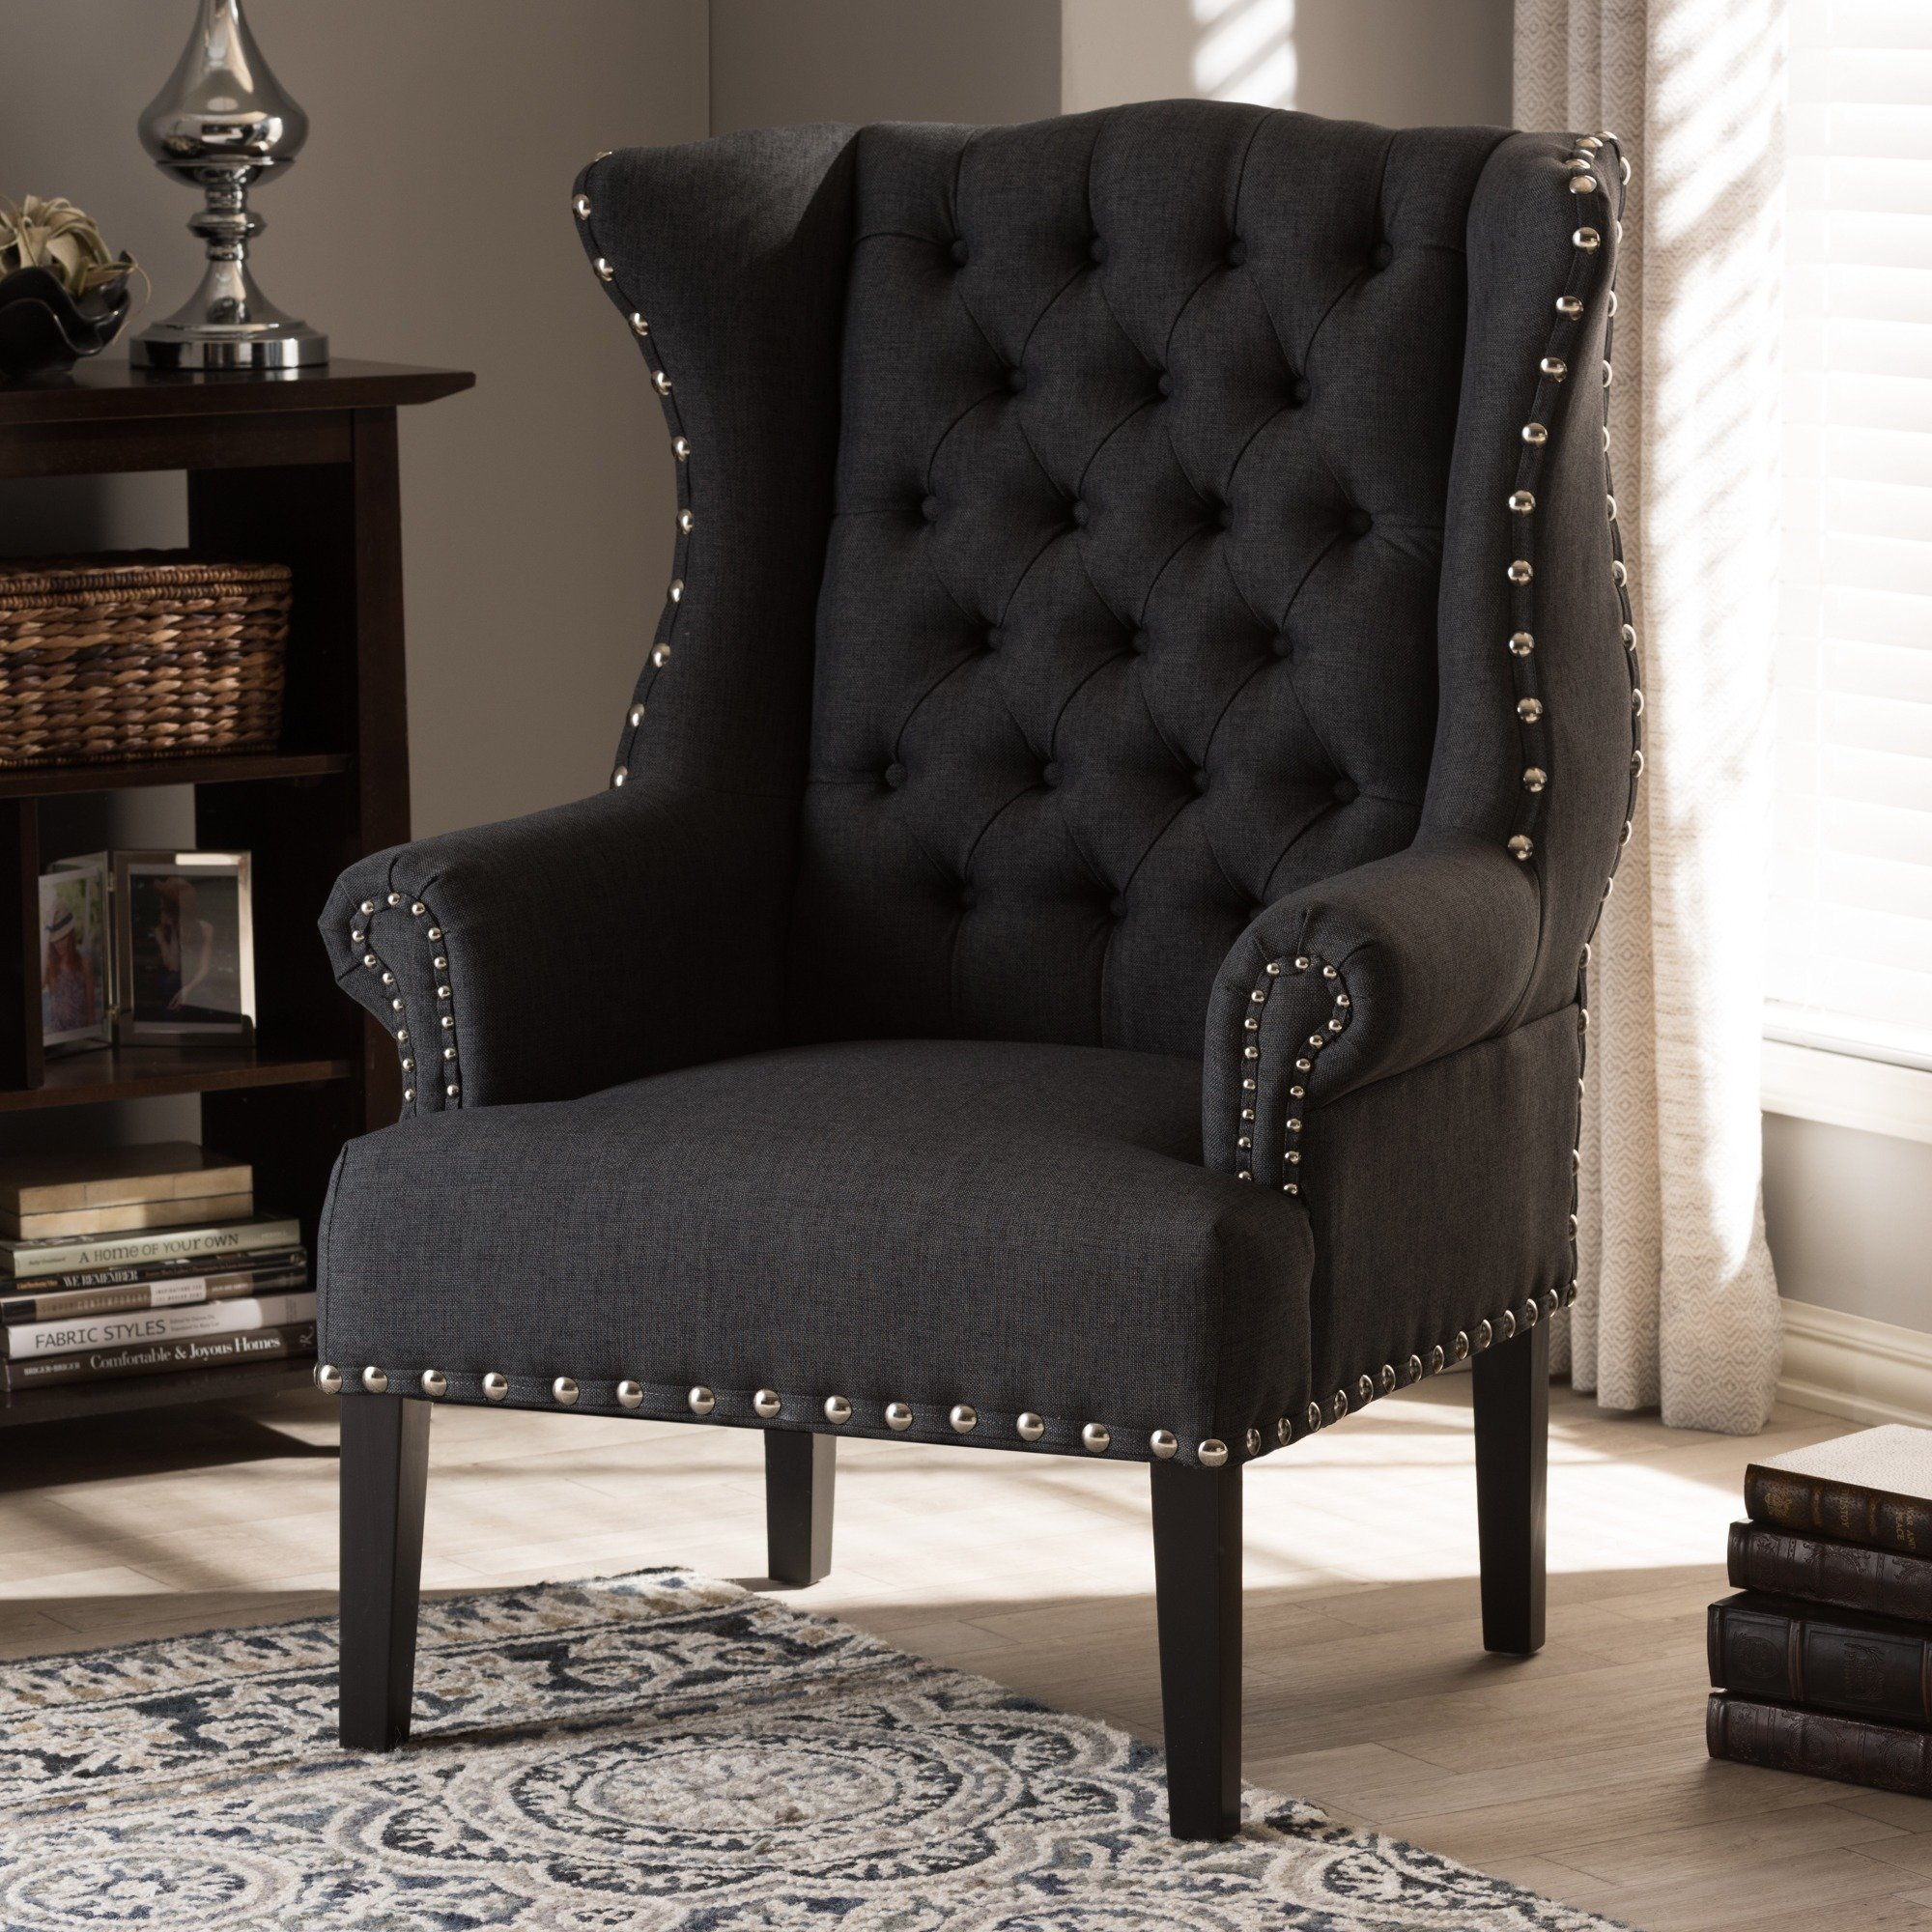 Shop Baxton Studio Patterson Grey Linen And Burlap Upholstered Pertaining To Patterson Ii Arm Sofa Chairs (Image 15 of 25)